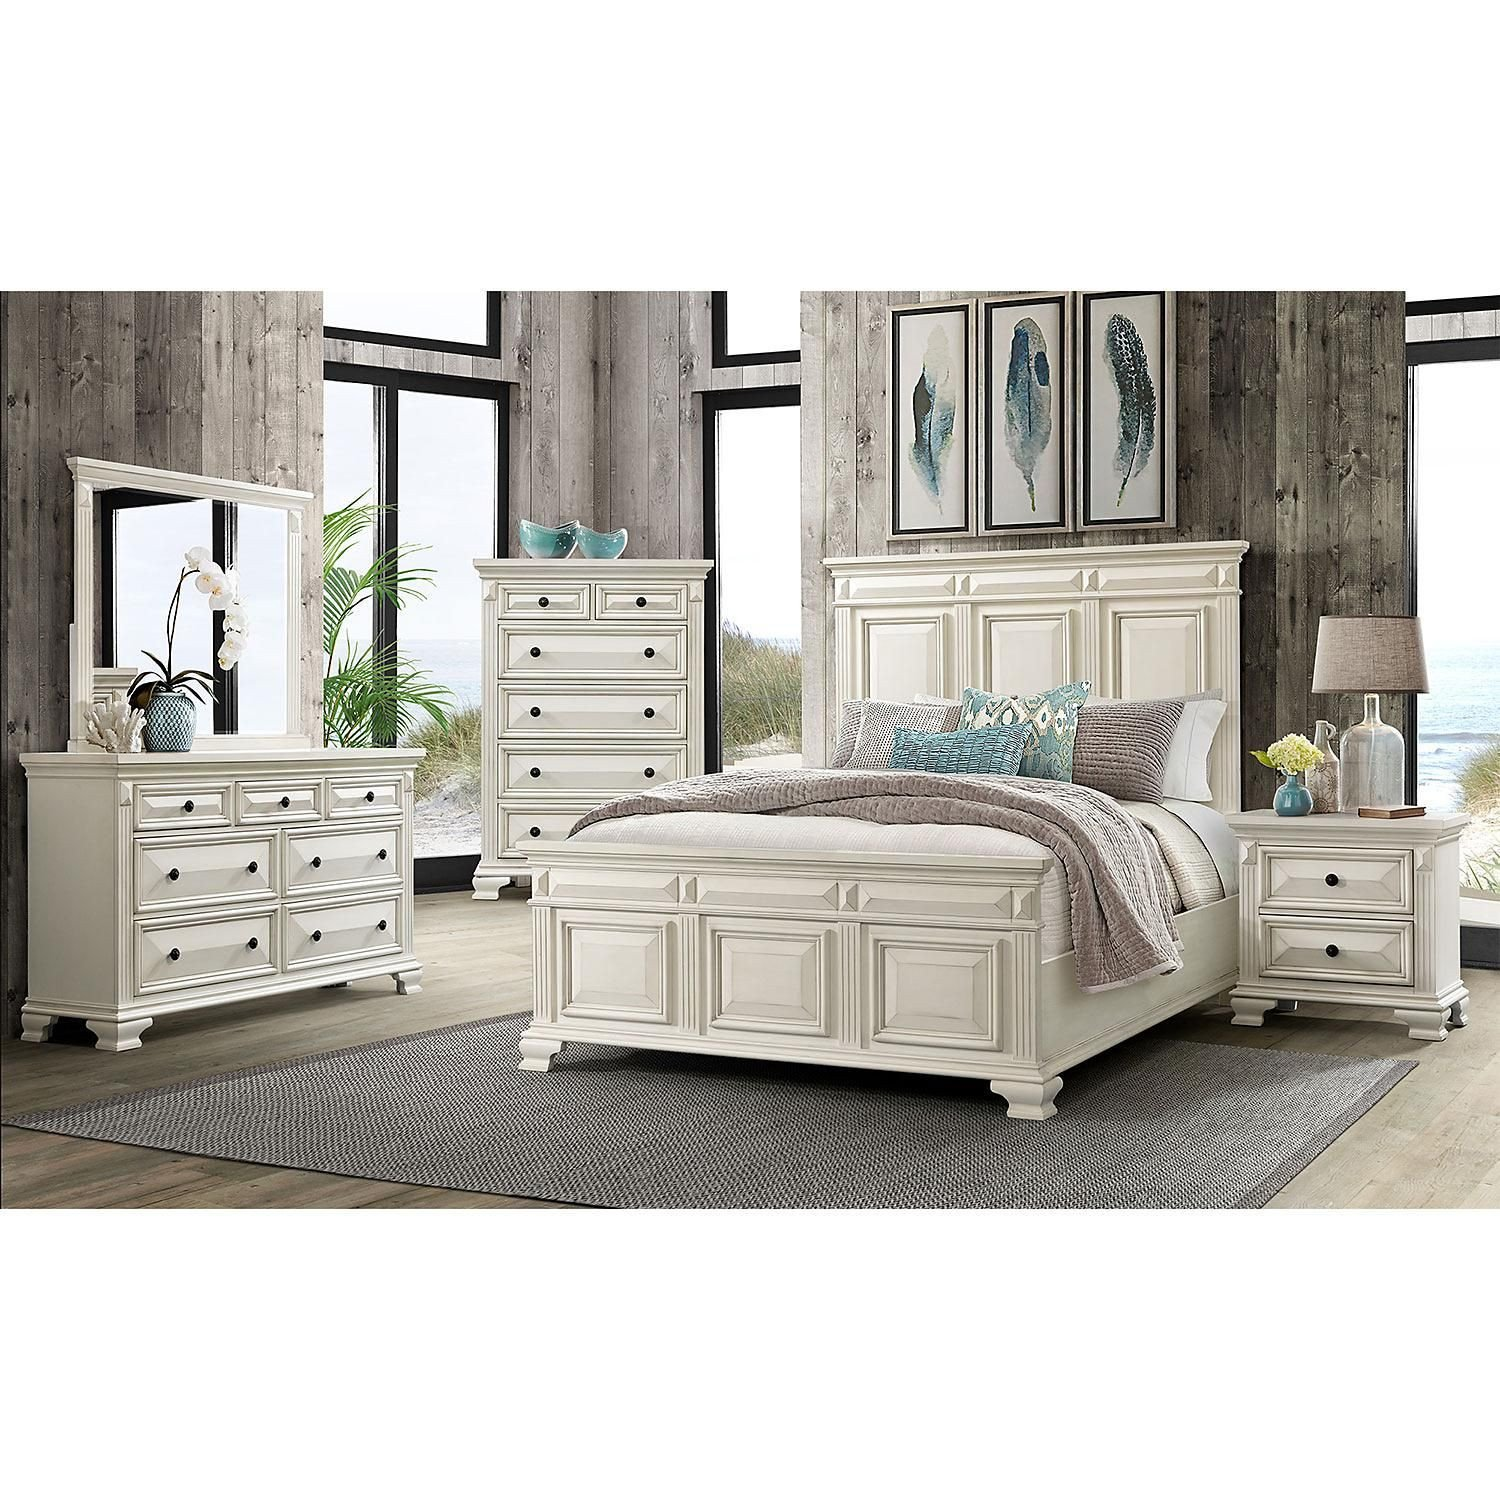 King Size Bedroom Set Cheap Inspirational $1599 00 society Den Trent Panel 6 Piece King Bedroom Set